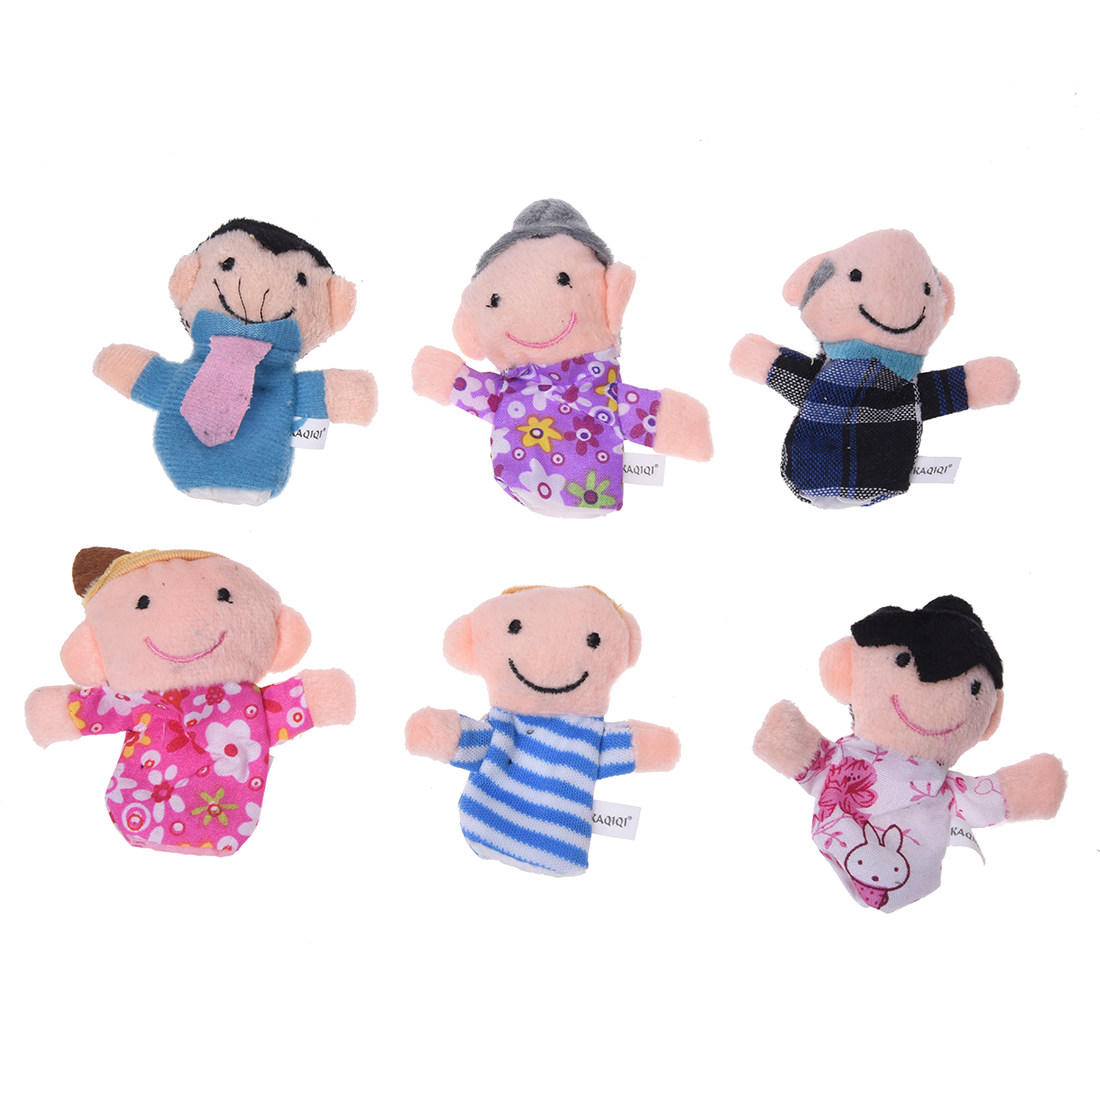 KEOL Best Sale 6Pcs Family Finger Puppet Cloth Baby Childs Kid Play Learn Story Helper Toy Doll